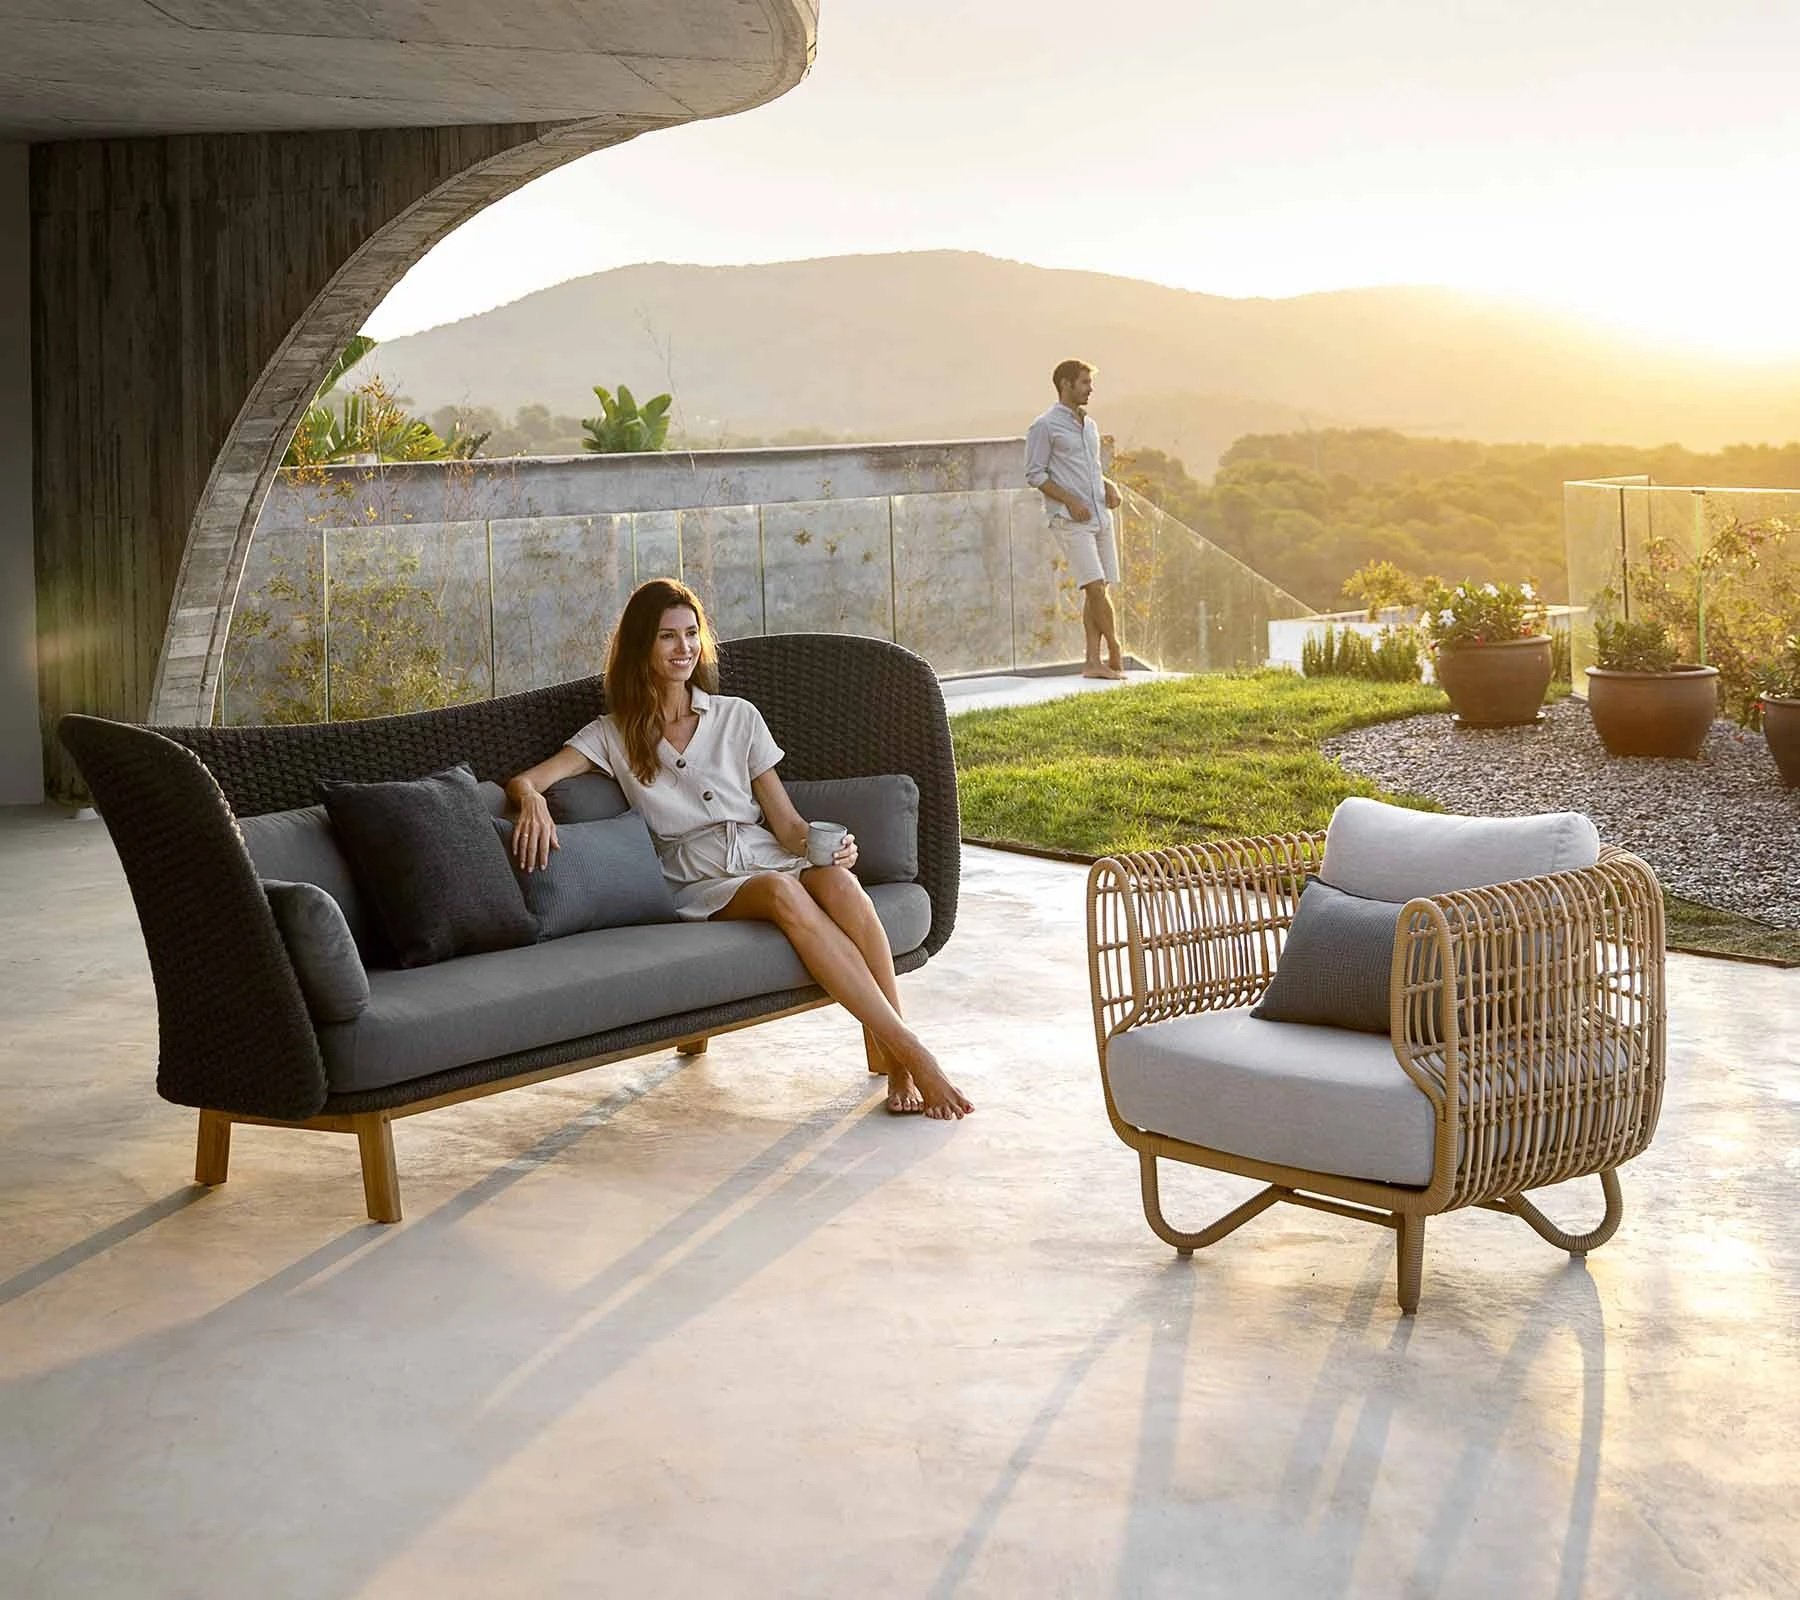 Nest Lounge Chair from Cane-line